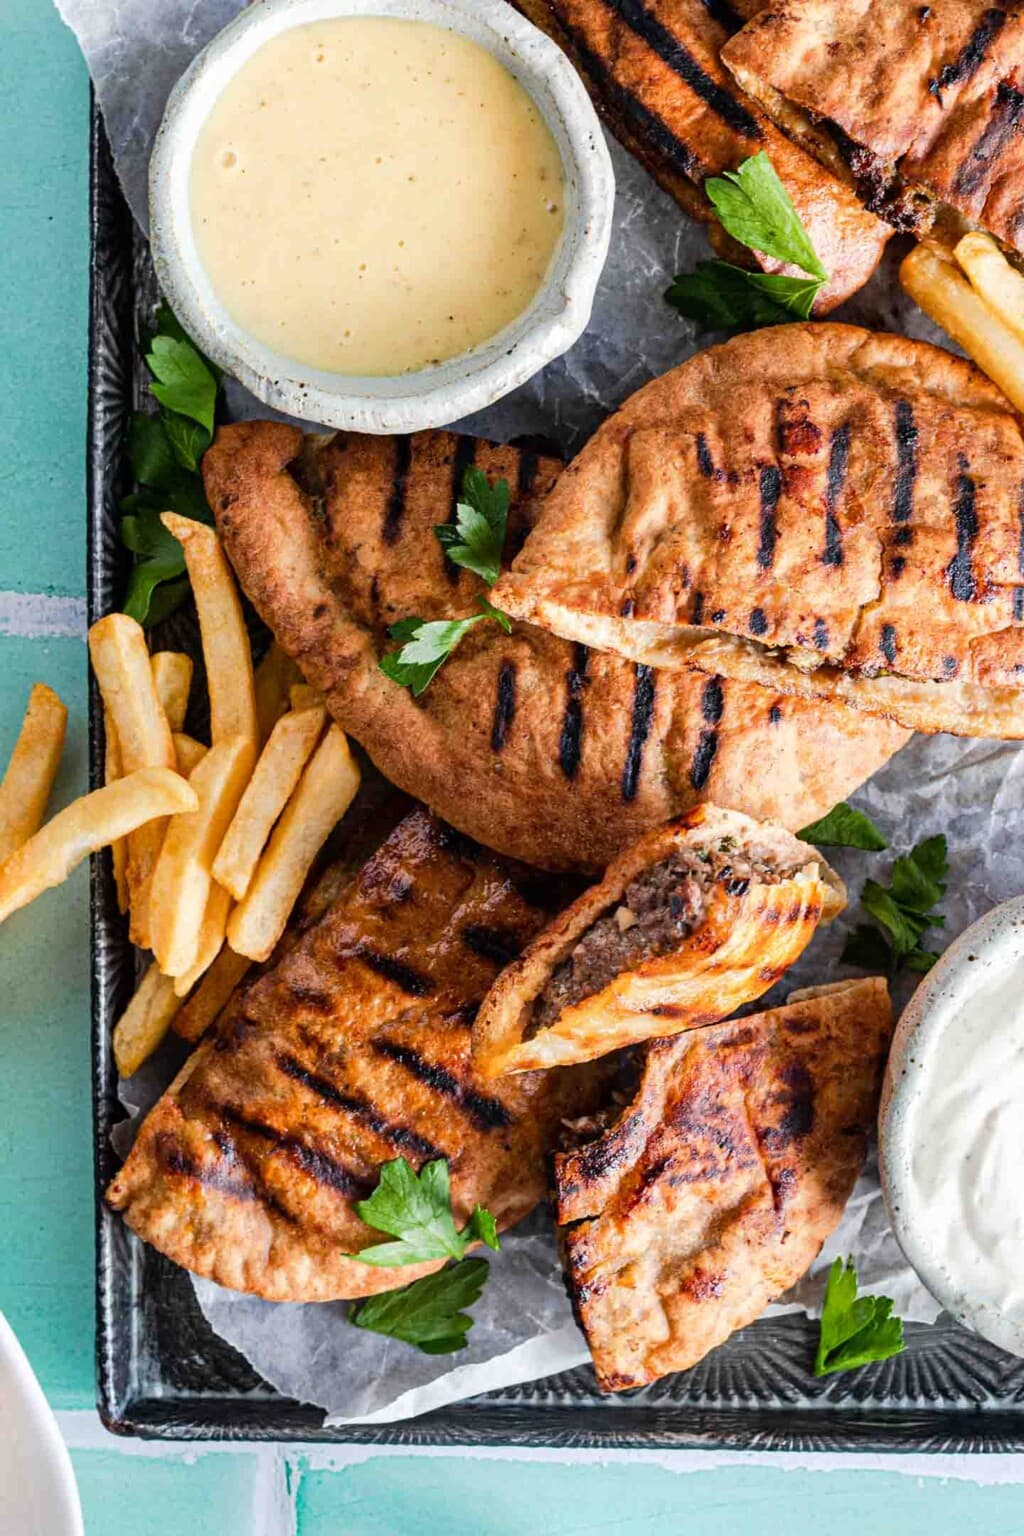 Pita bread stuffed with ground beef and grilled, served on a tray with fries and sauce